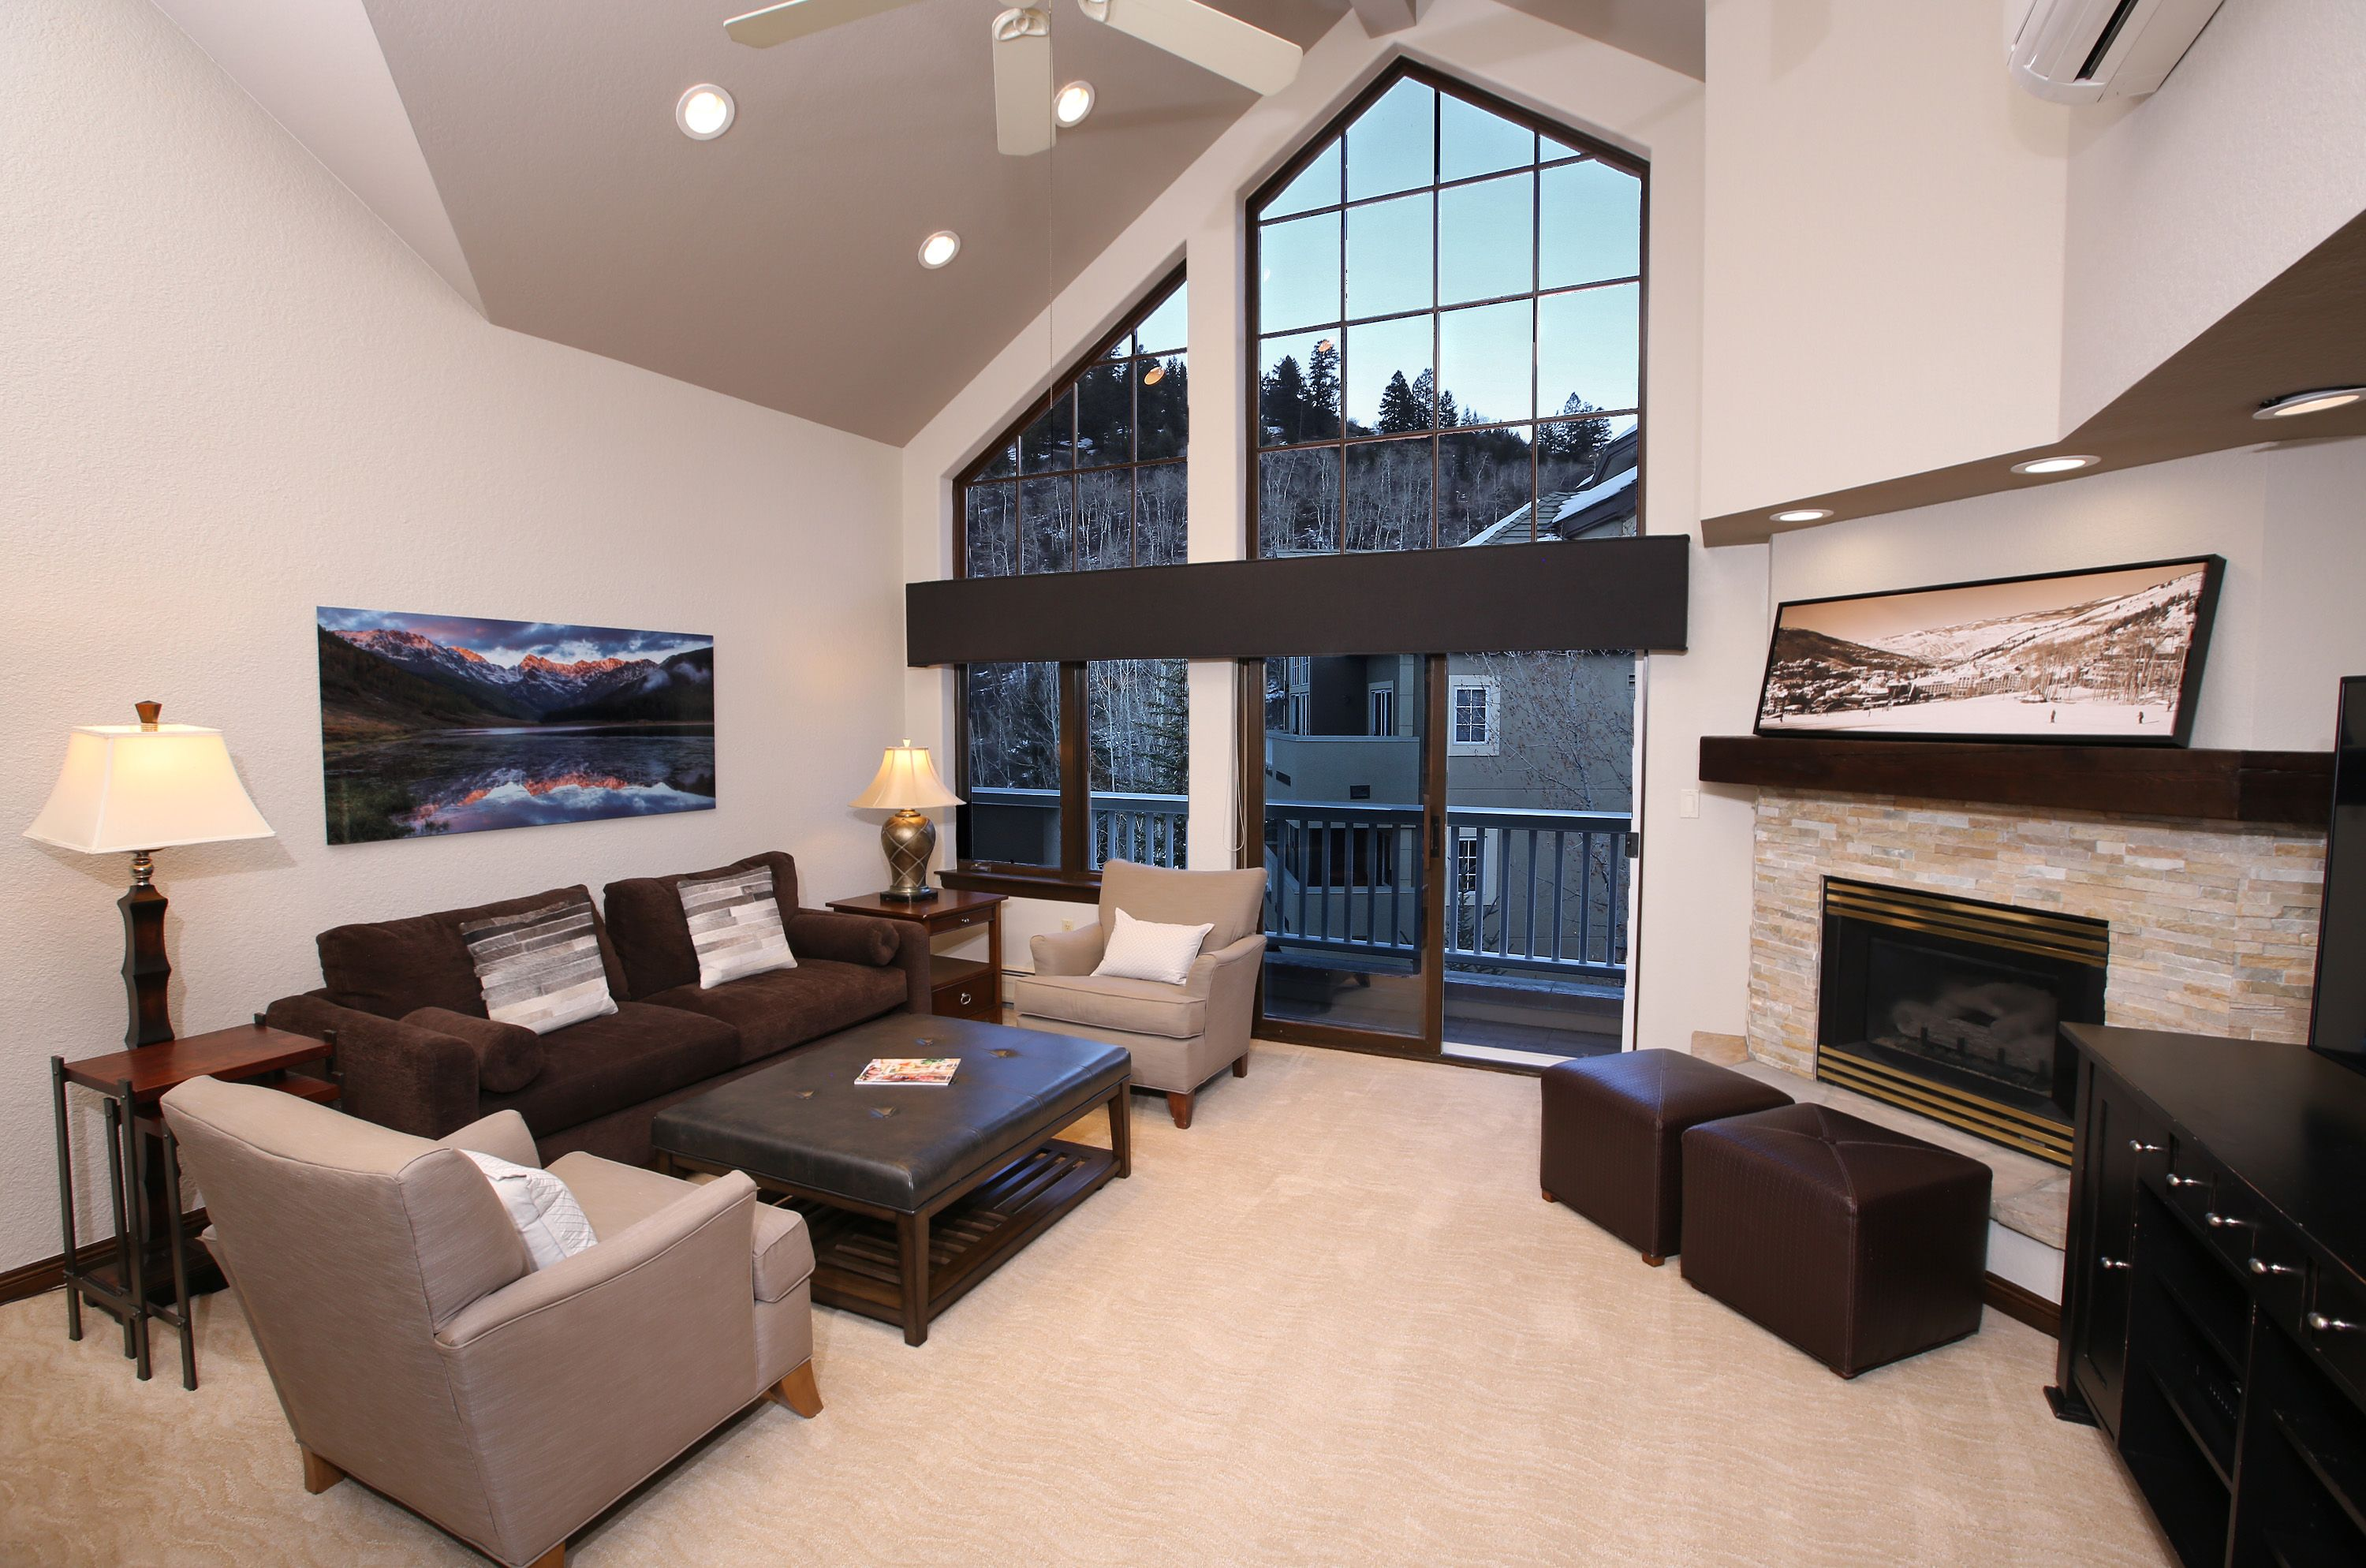 210 Offerson Road # R-103 Beaver Creek, CO 81620